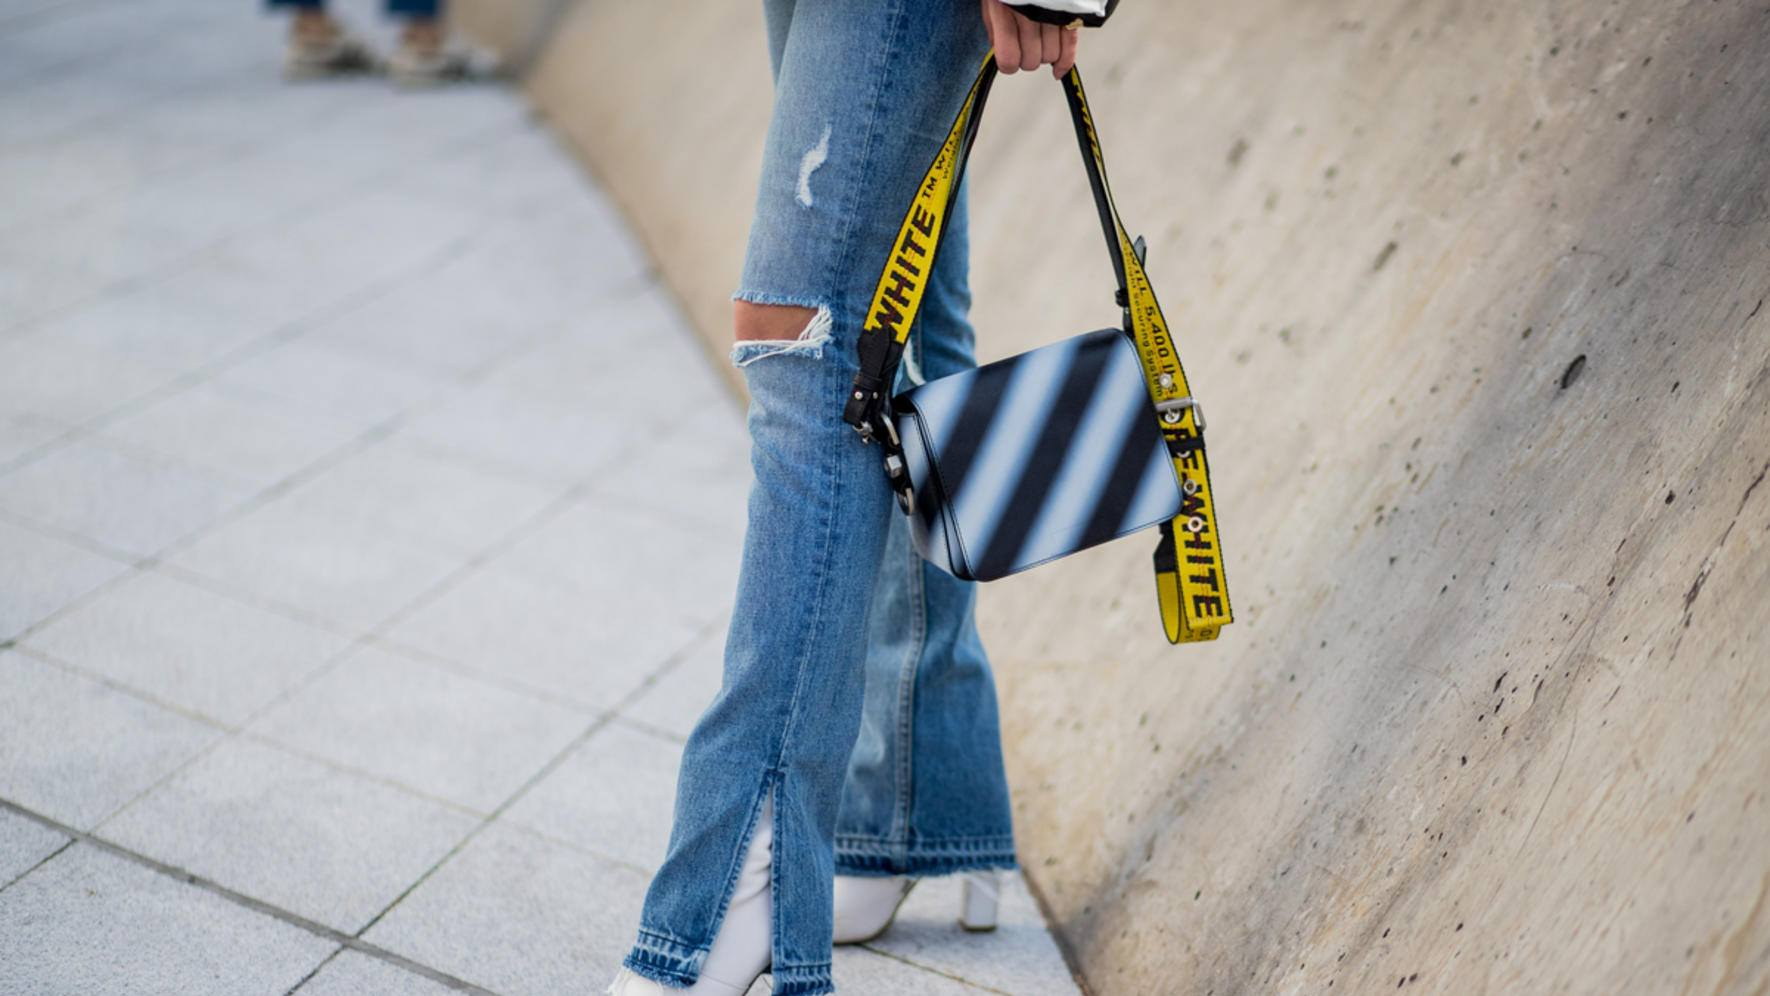 Der heisseste Denim-Trend des Winters